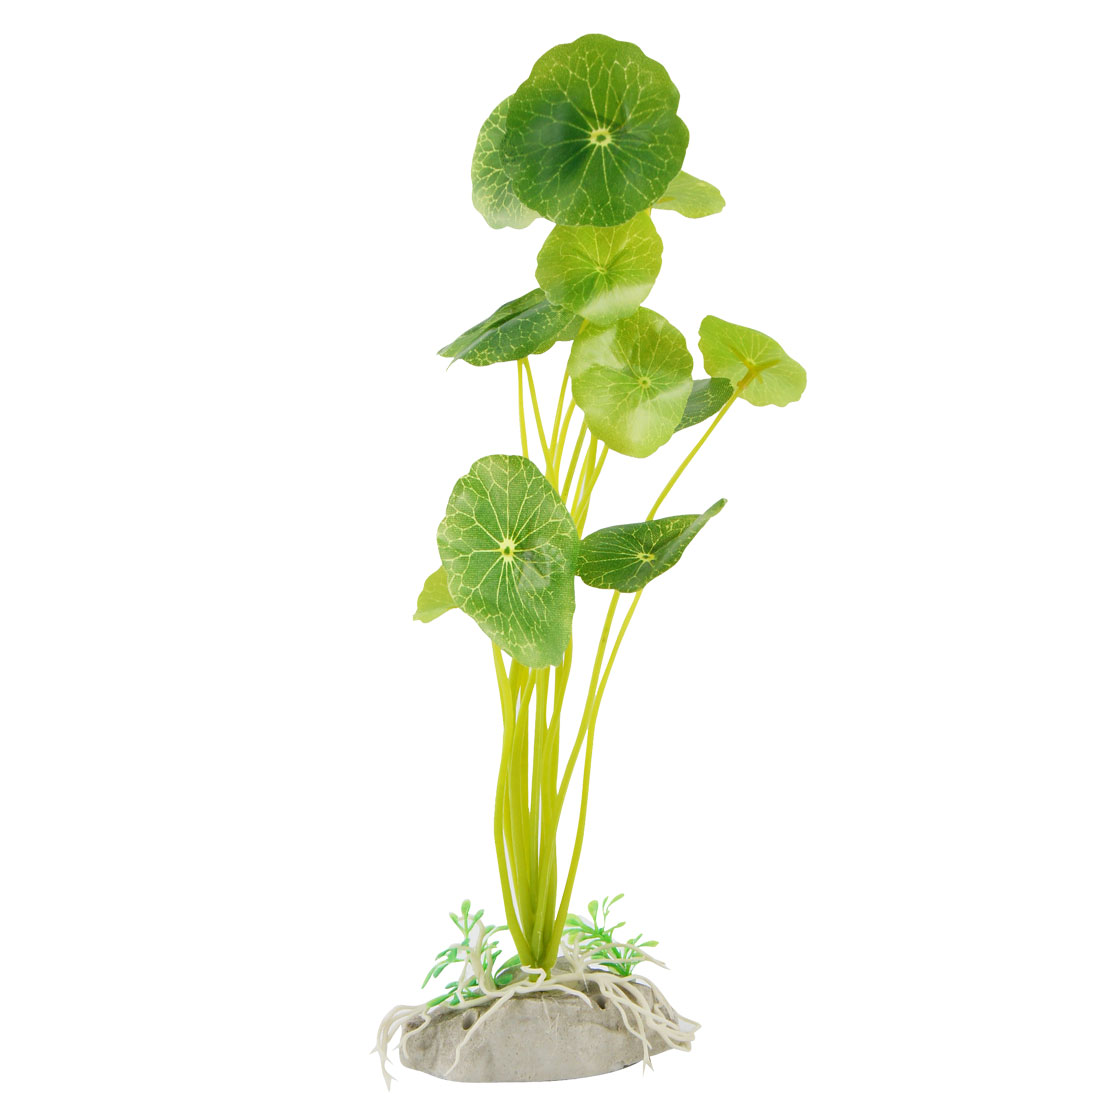 "Green Plastic Round Leaf Plant Grass Decor 9.4"" Height for Fish Tank"